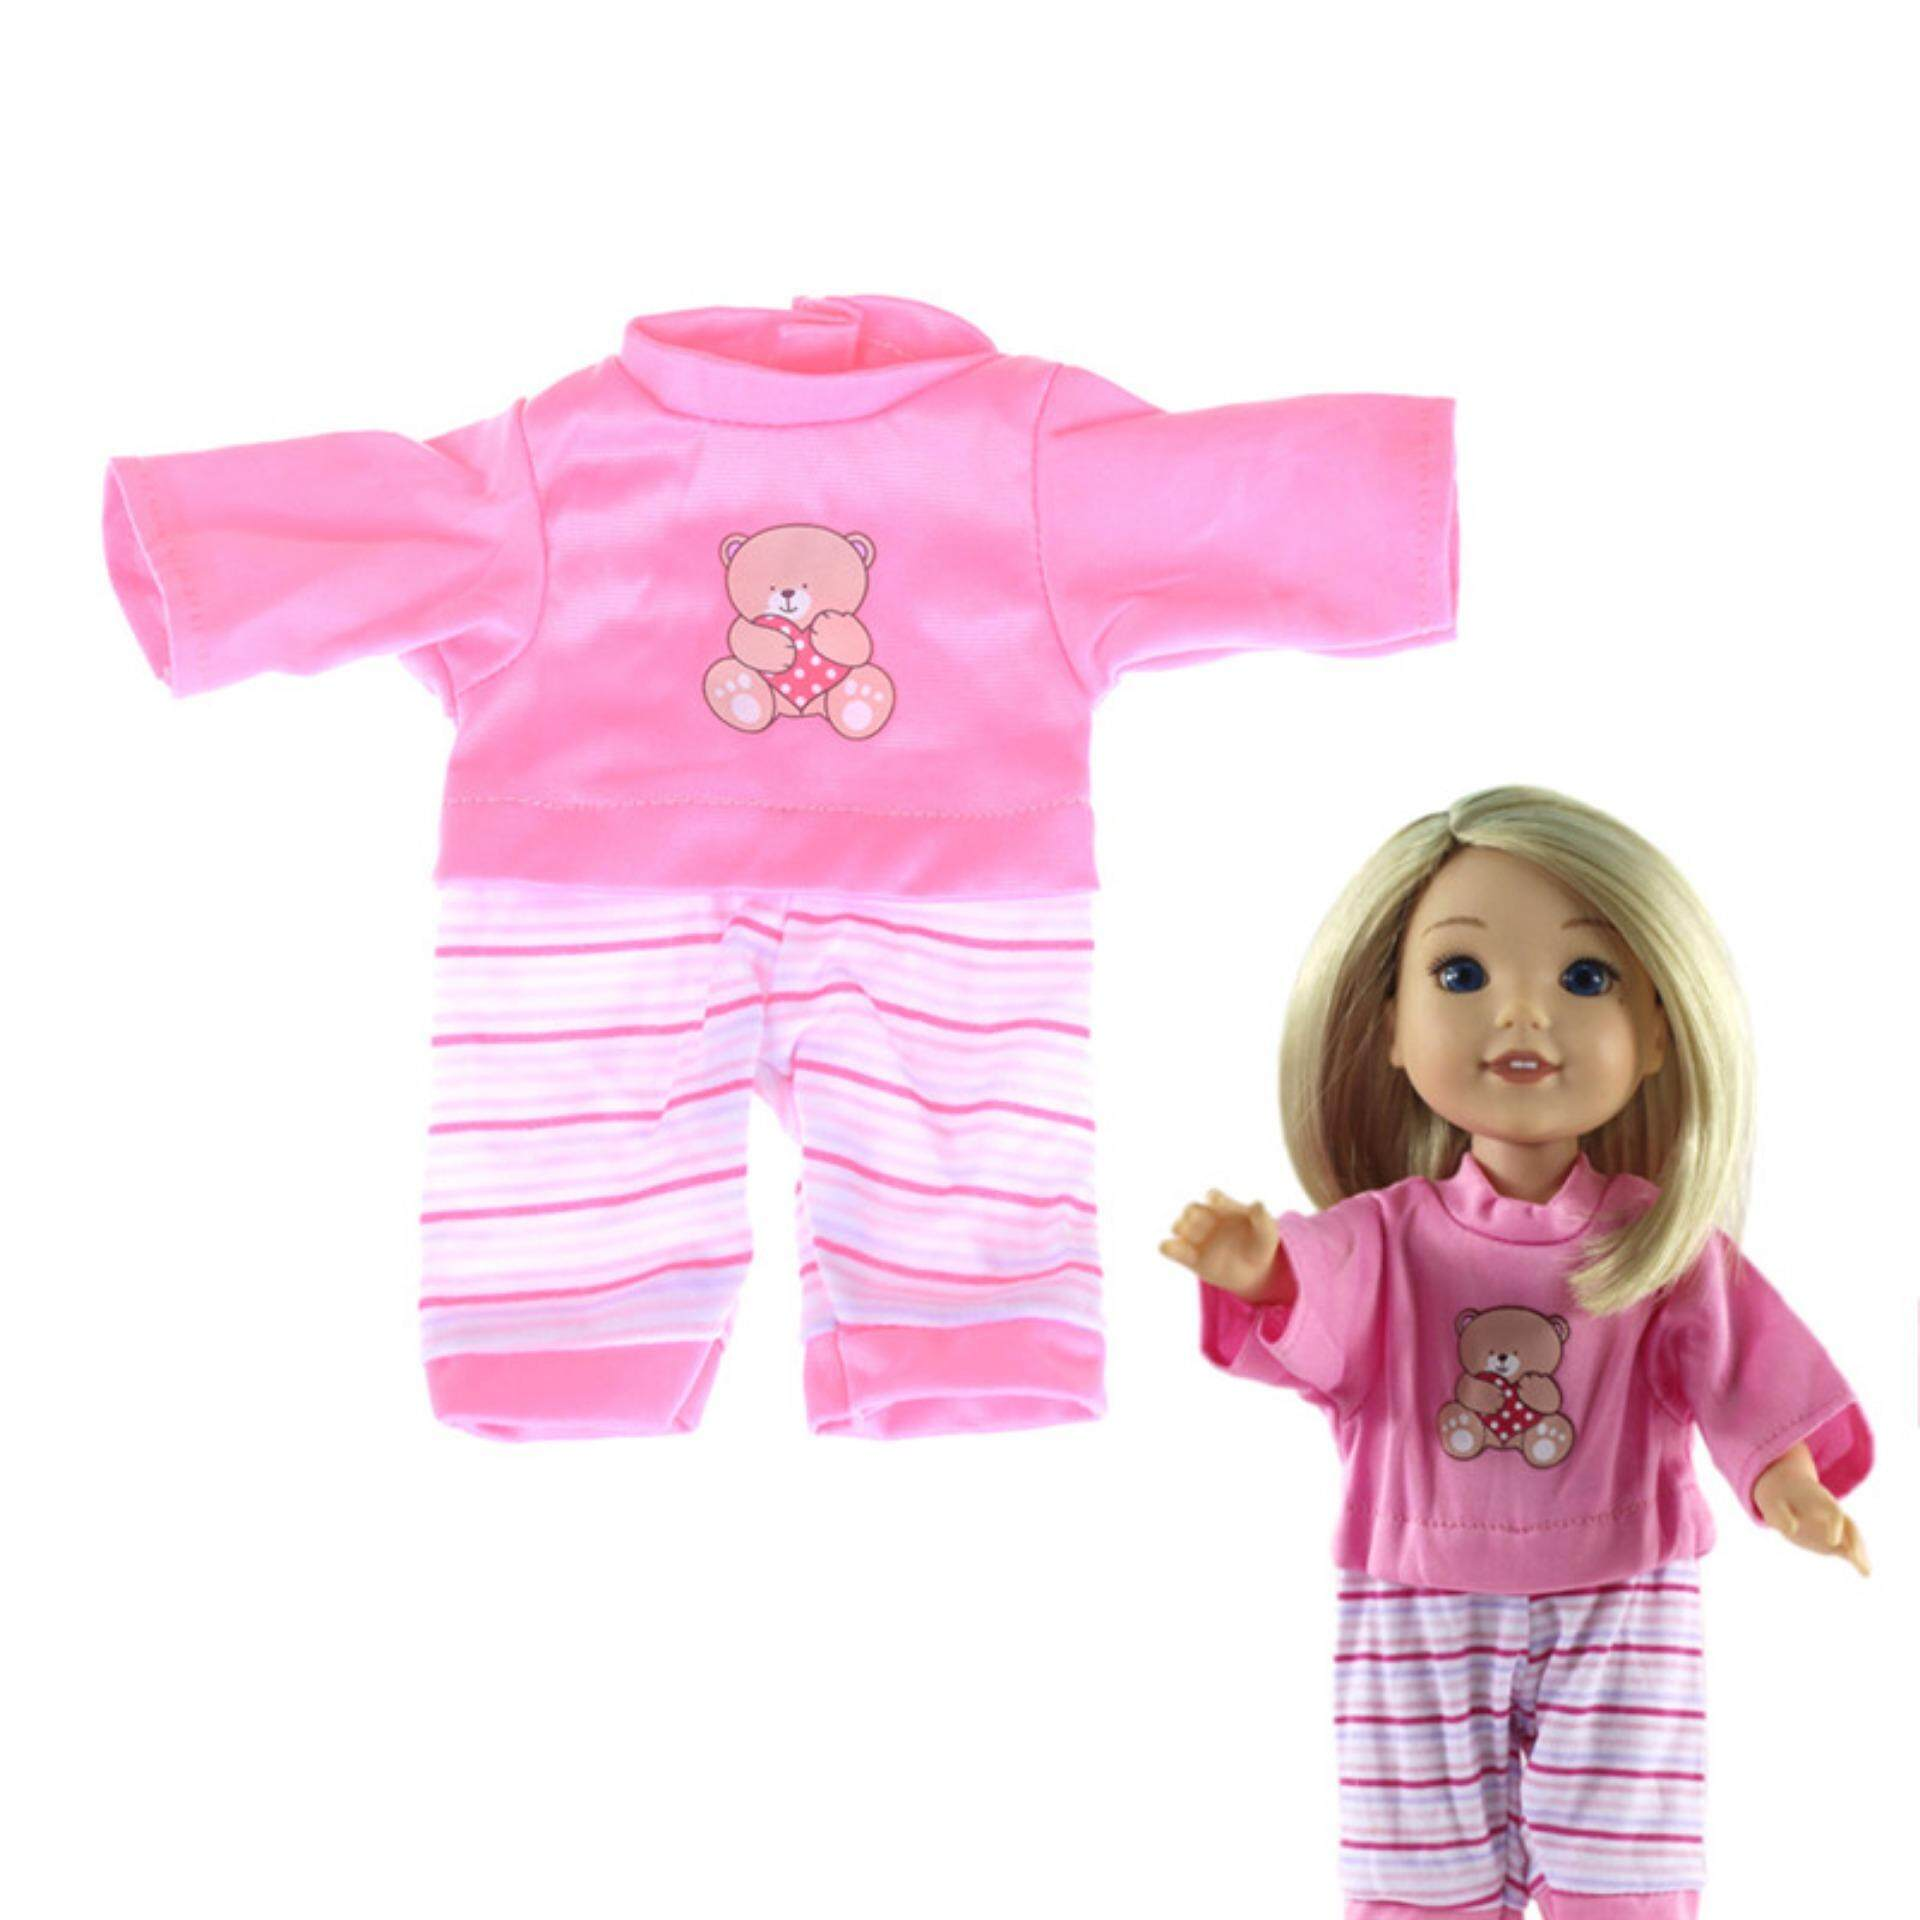 Cute Doll Pink Jumpsuits Clothes For 14 14.5 Inch American Girl Doll  Clothing Gift One 62c4b2546124